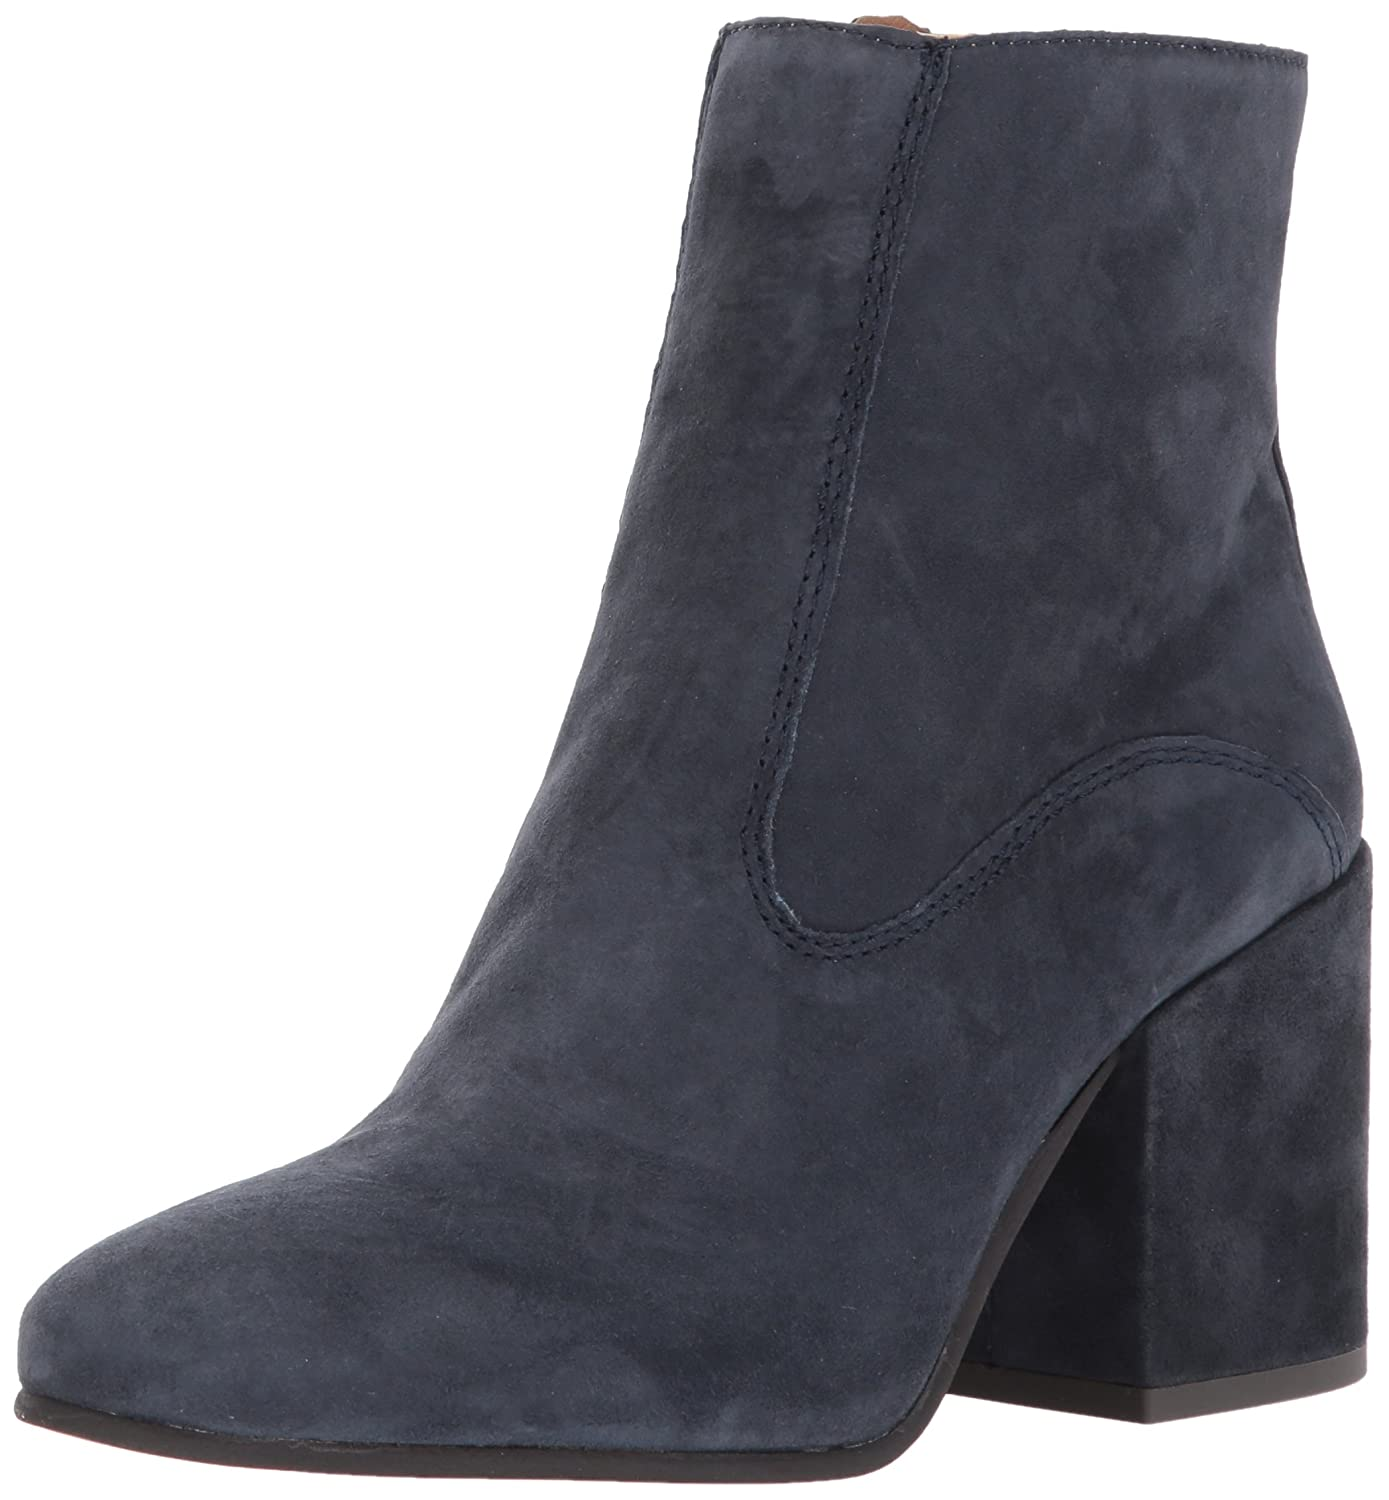 Lucky Brand Women's Rainns Ankle Boot B01MQYCOHH 7.5 M US|Moroccan Blue